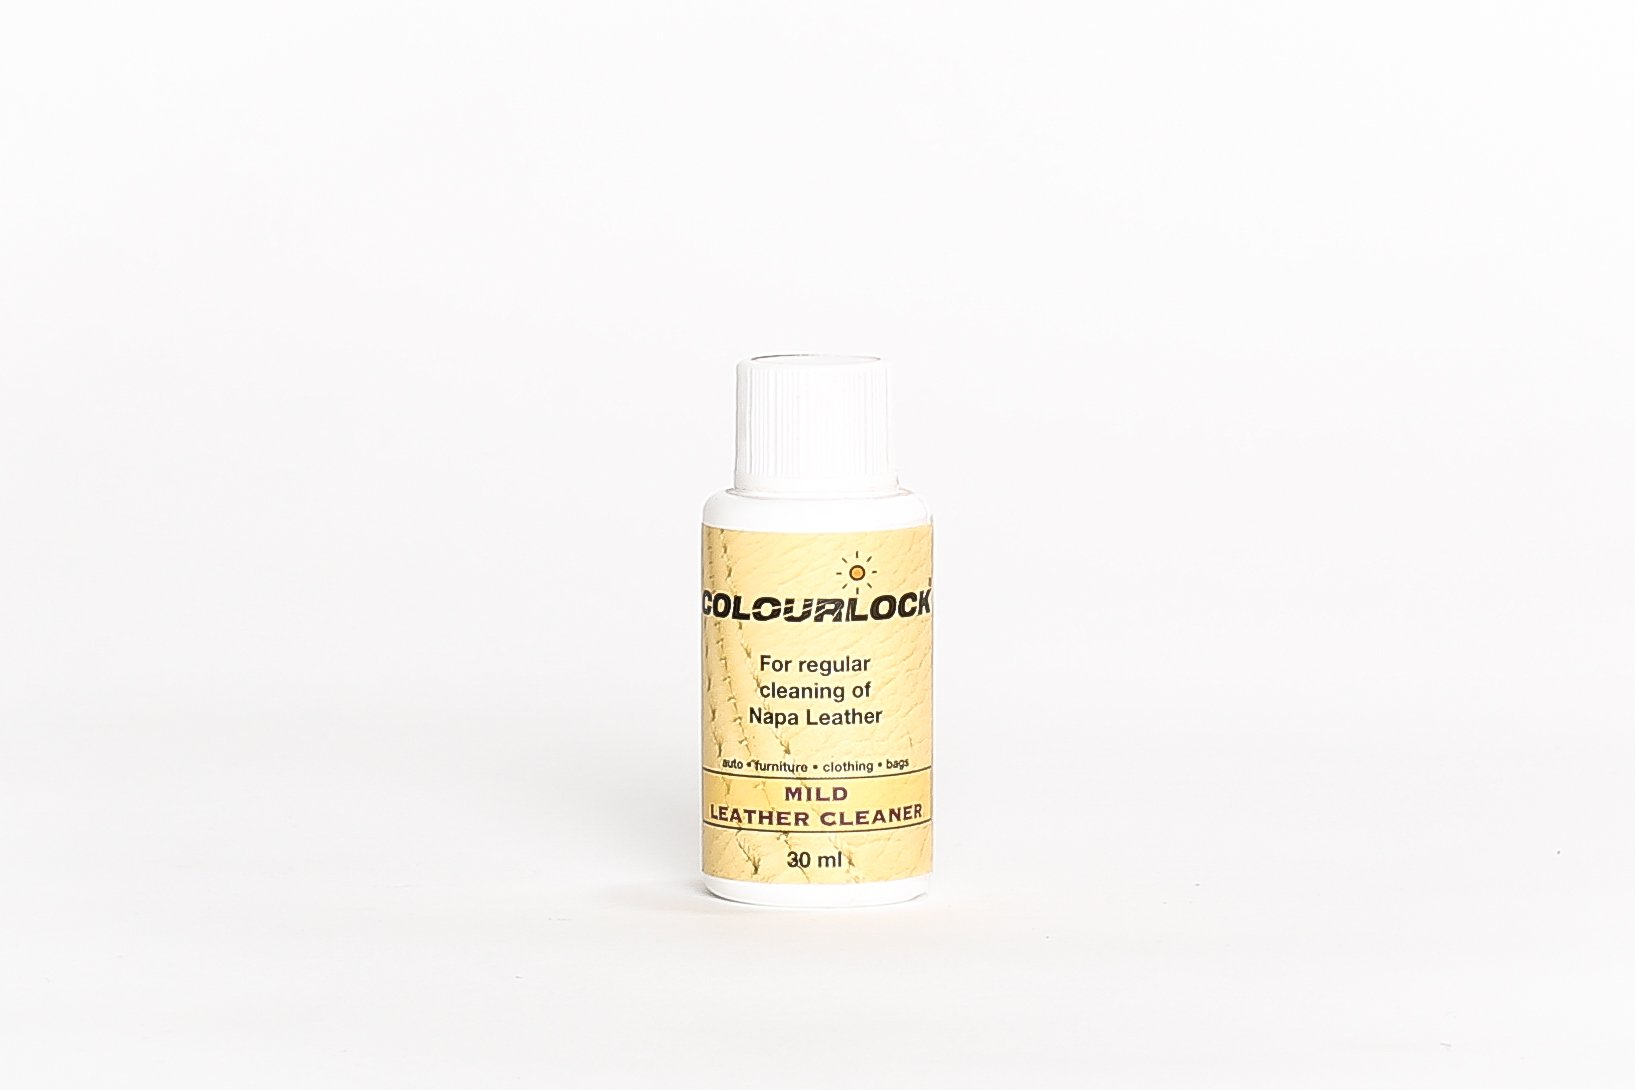 Colourlock Leather Handbag Cleaner & Polishing kit - Ideal kit to Clean, Polish and Protect Bags by Colourlock (Image #4)